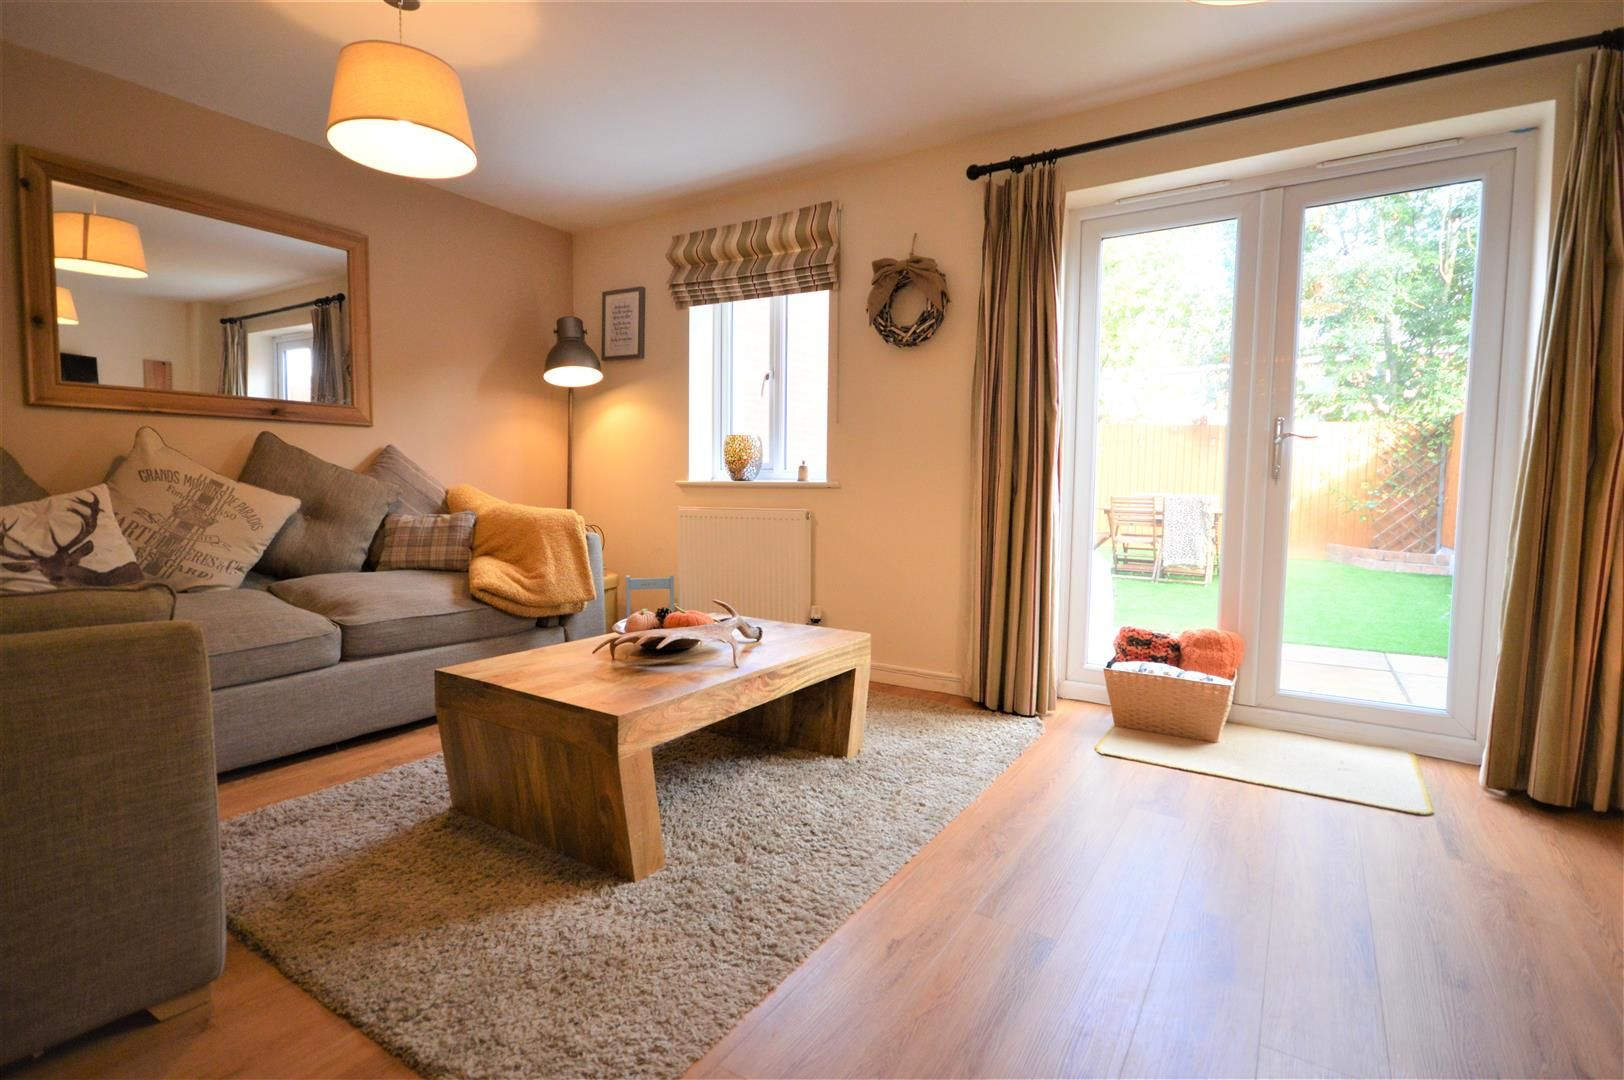 4 bed semi-detached for sale in Leominster  - Property Image 4